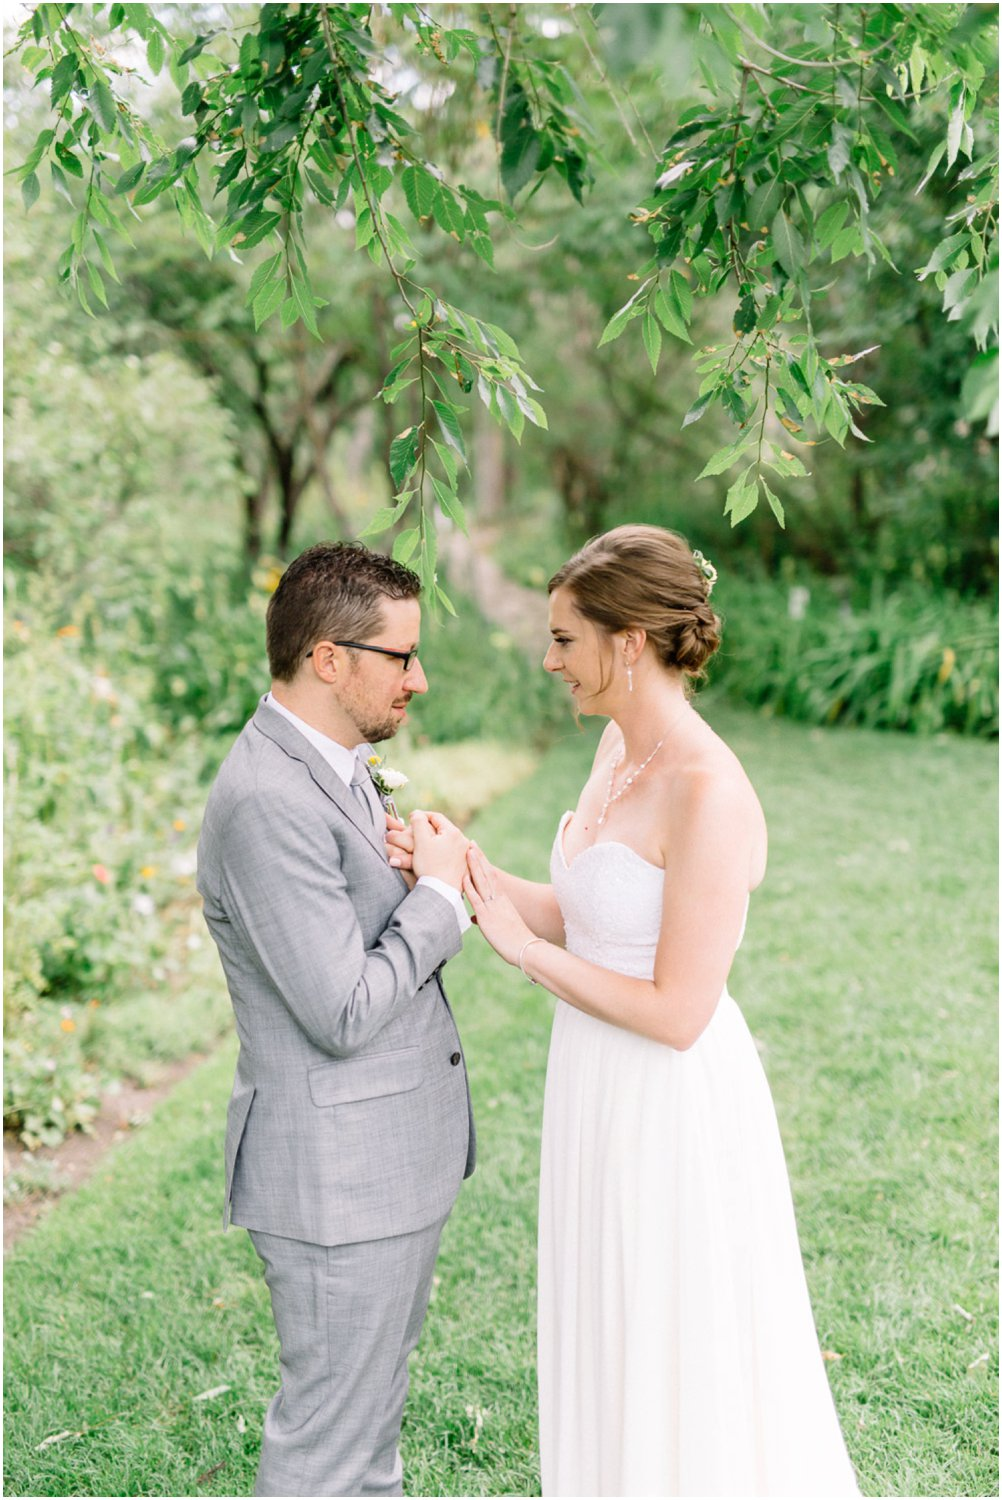 Calgary zoo wedding - Calgary Wedding Photographers_5196